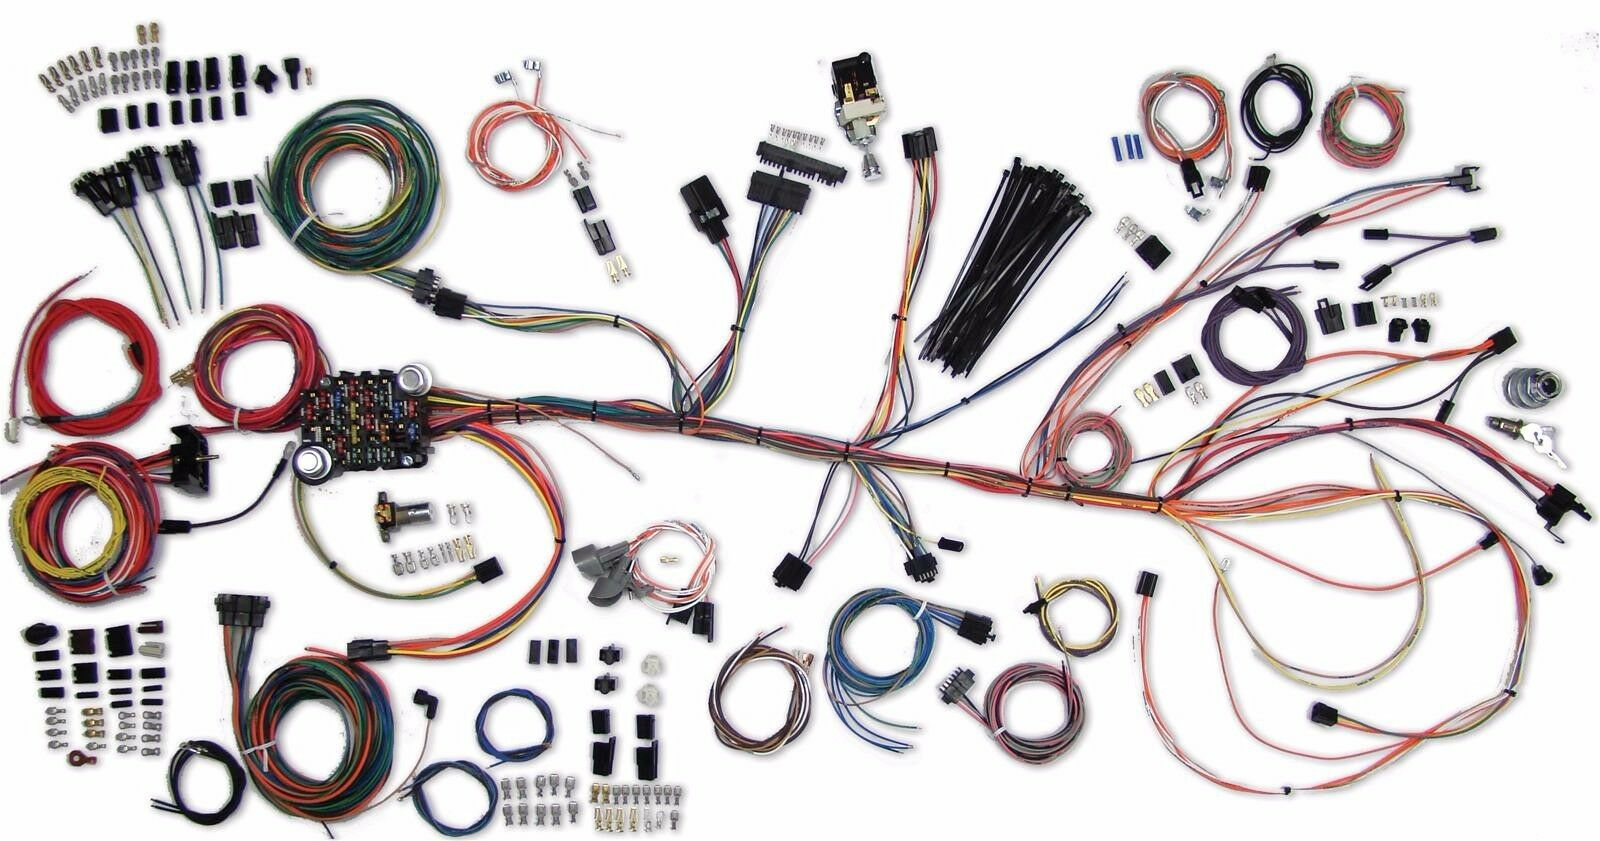 American Autowire Wiring Harness Library 68 Chevelle Diagram 64 67 Malibu Ss Classic Update 500981 1 Of